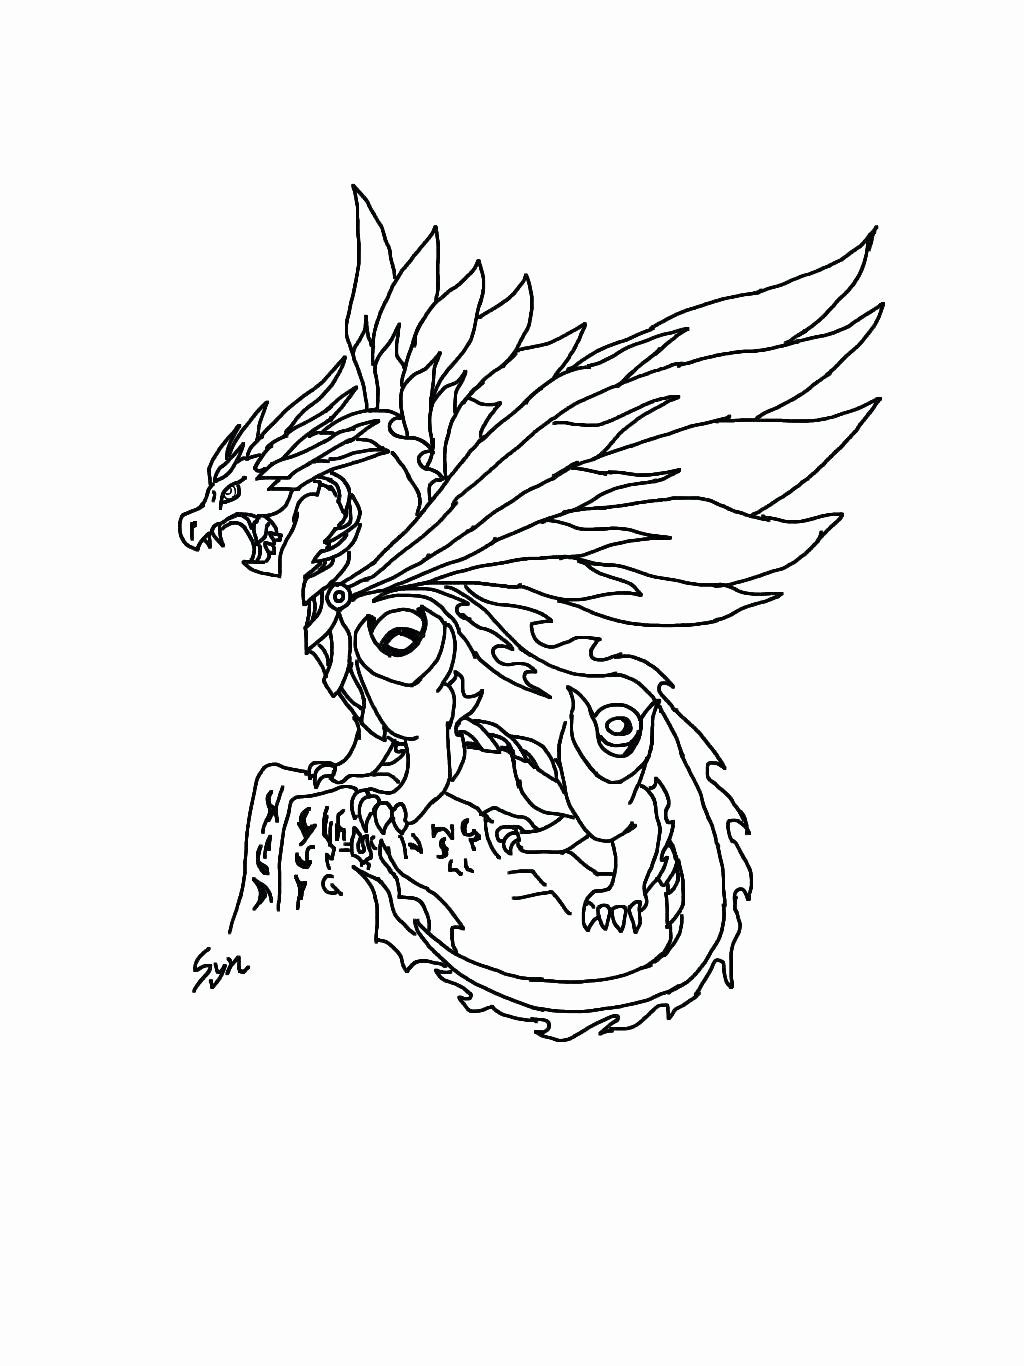 Detailed Dragon Coloring Pages Elegant Realistic Coloring Pages Of Unicorns Huskypaper Dragon Coloring Page Animal Coloring Pages Horse Coloring Pages [ 1366 x 1024 Pixel ]